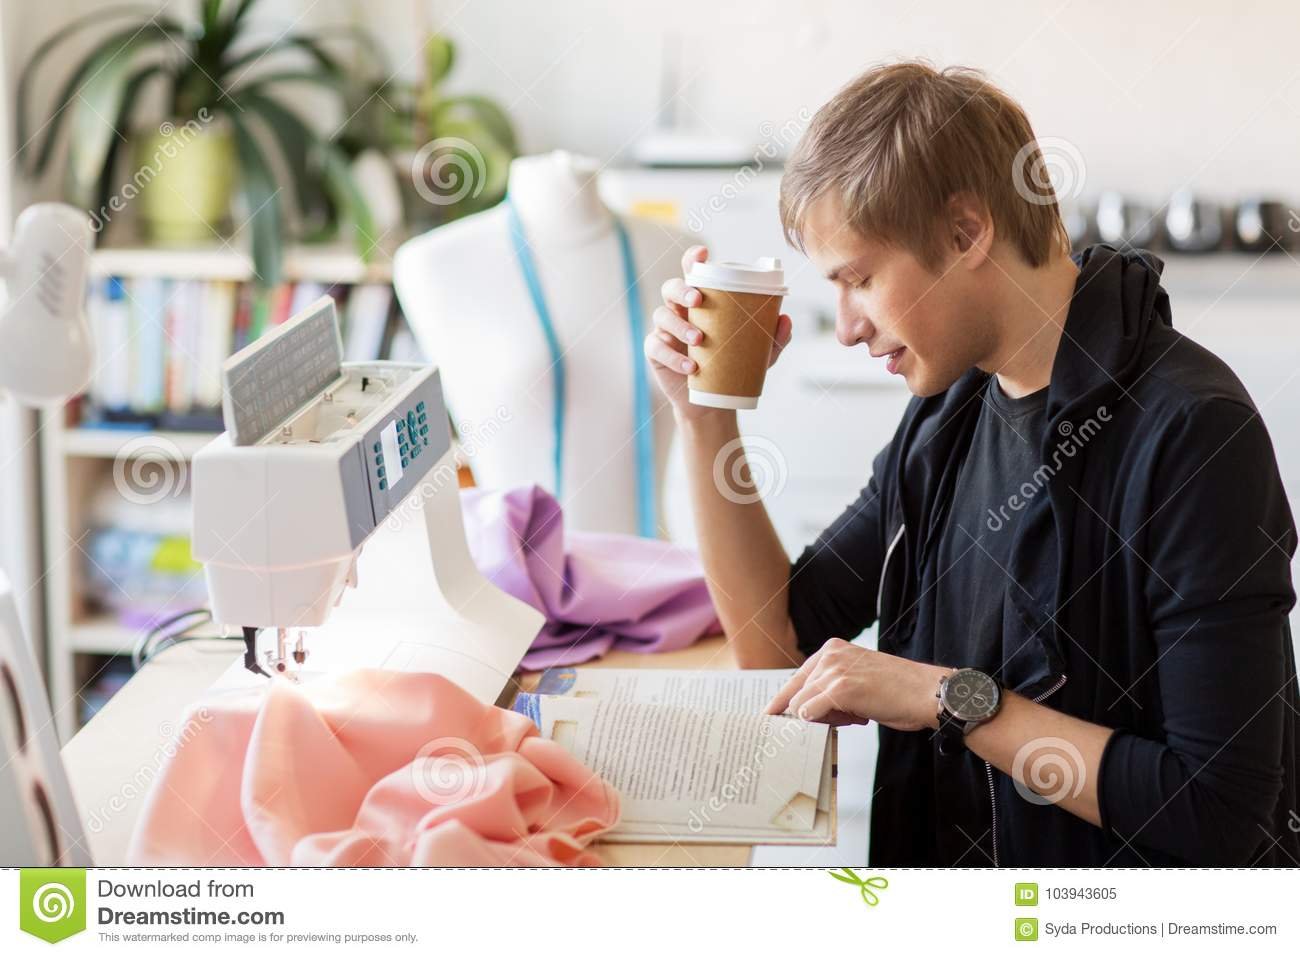 Fashion Designer With Coffee And Book At Studio Stock Image Image Of Male Drink 103943605